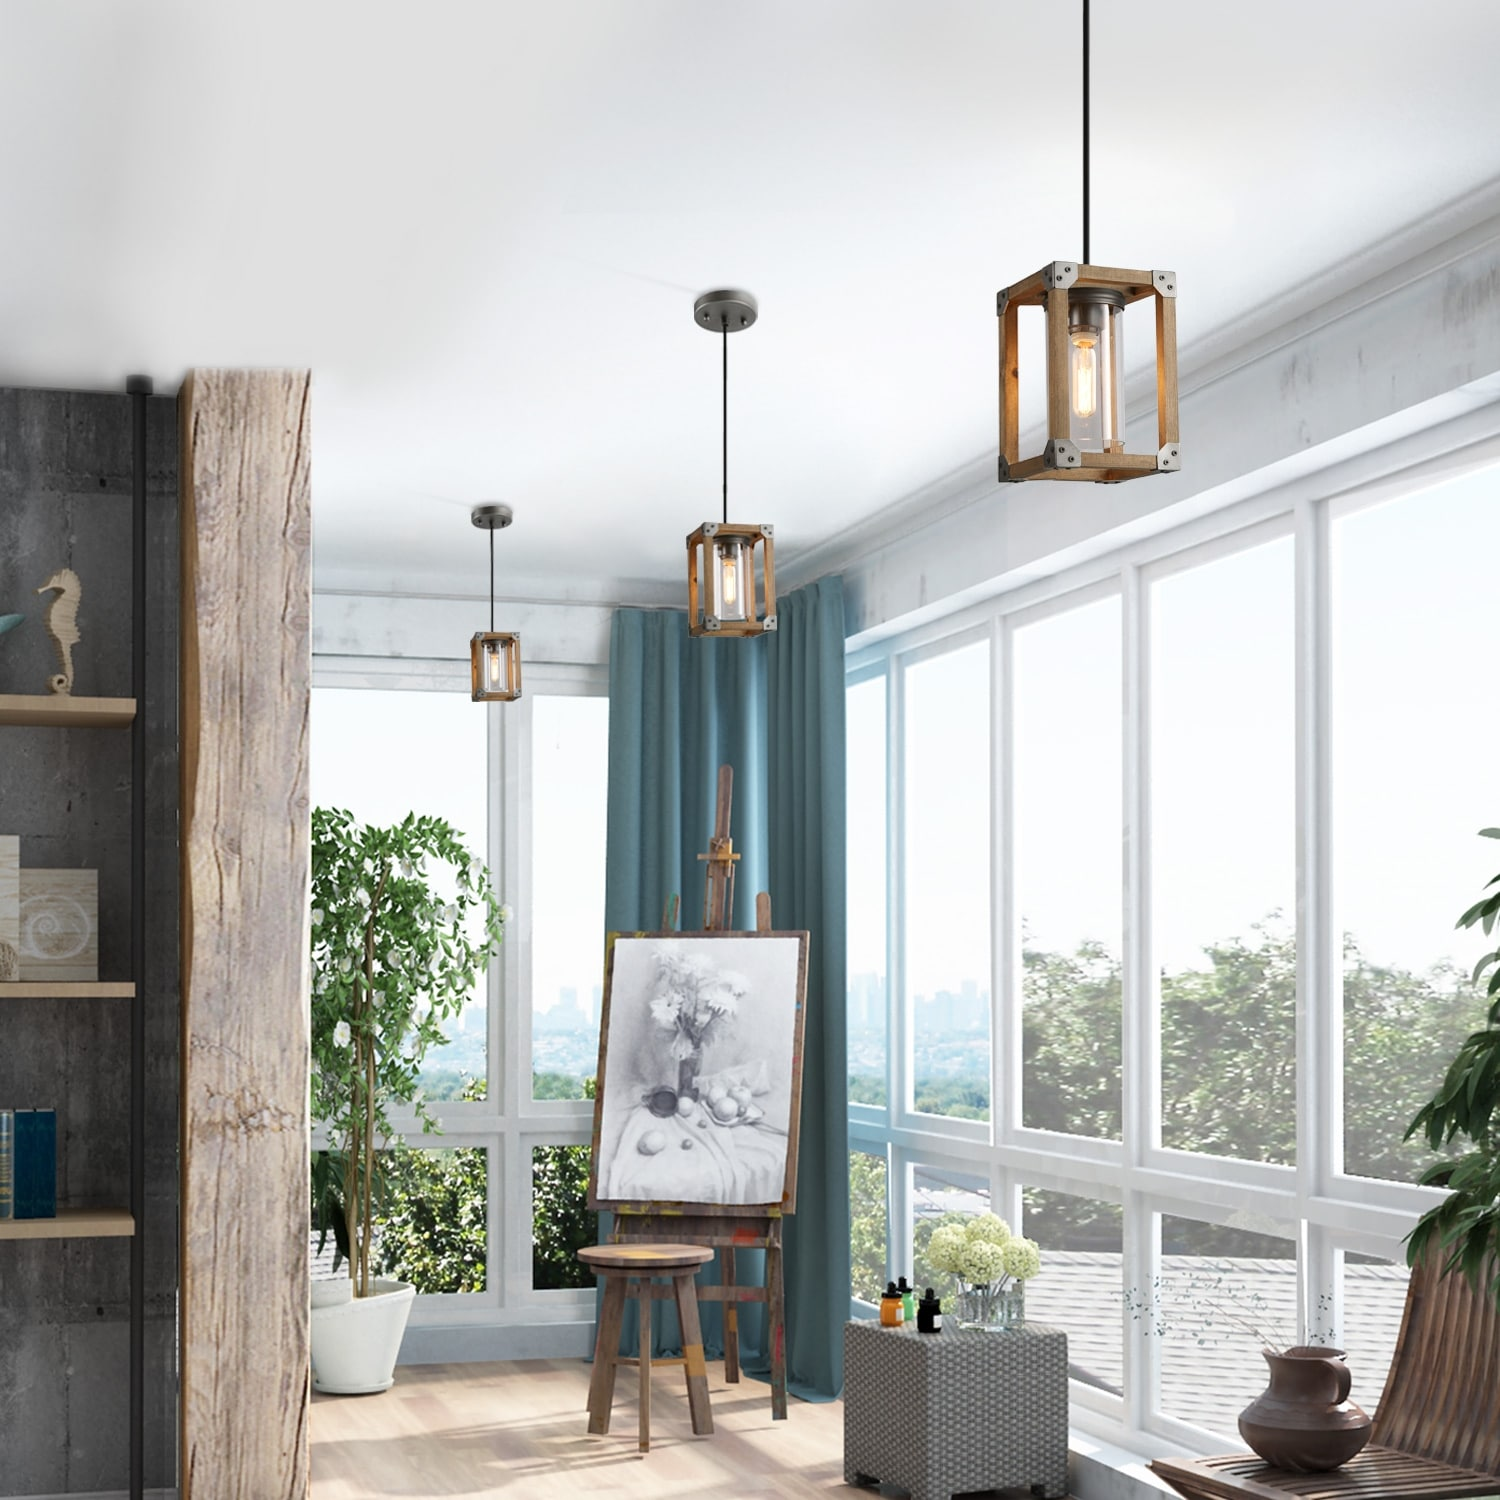 Shop Black Friday Deals On Farmhouse Antique Wood Foyer Pendant Lighting With Glass Shade W5 1 Xh8 3 Overstock 29179385